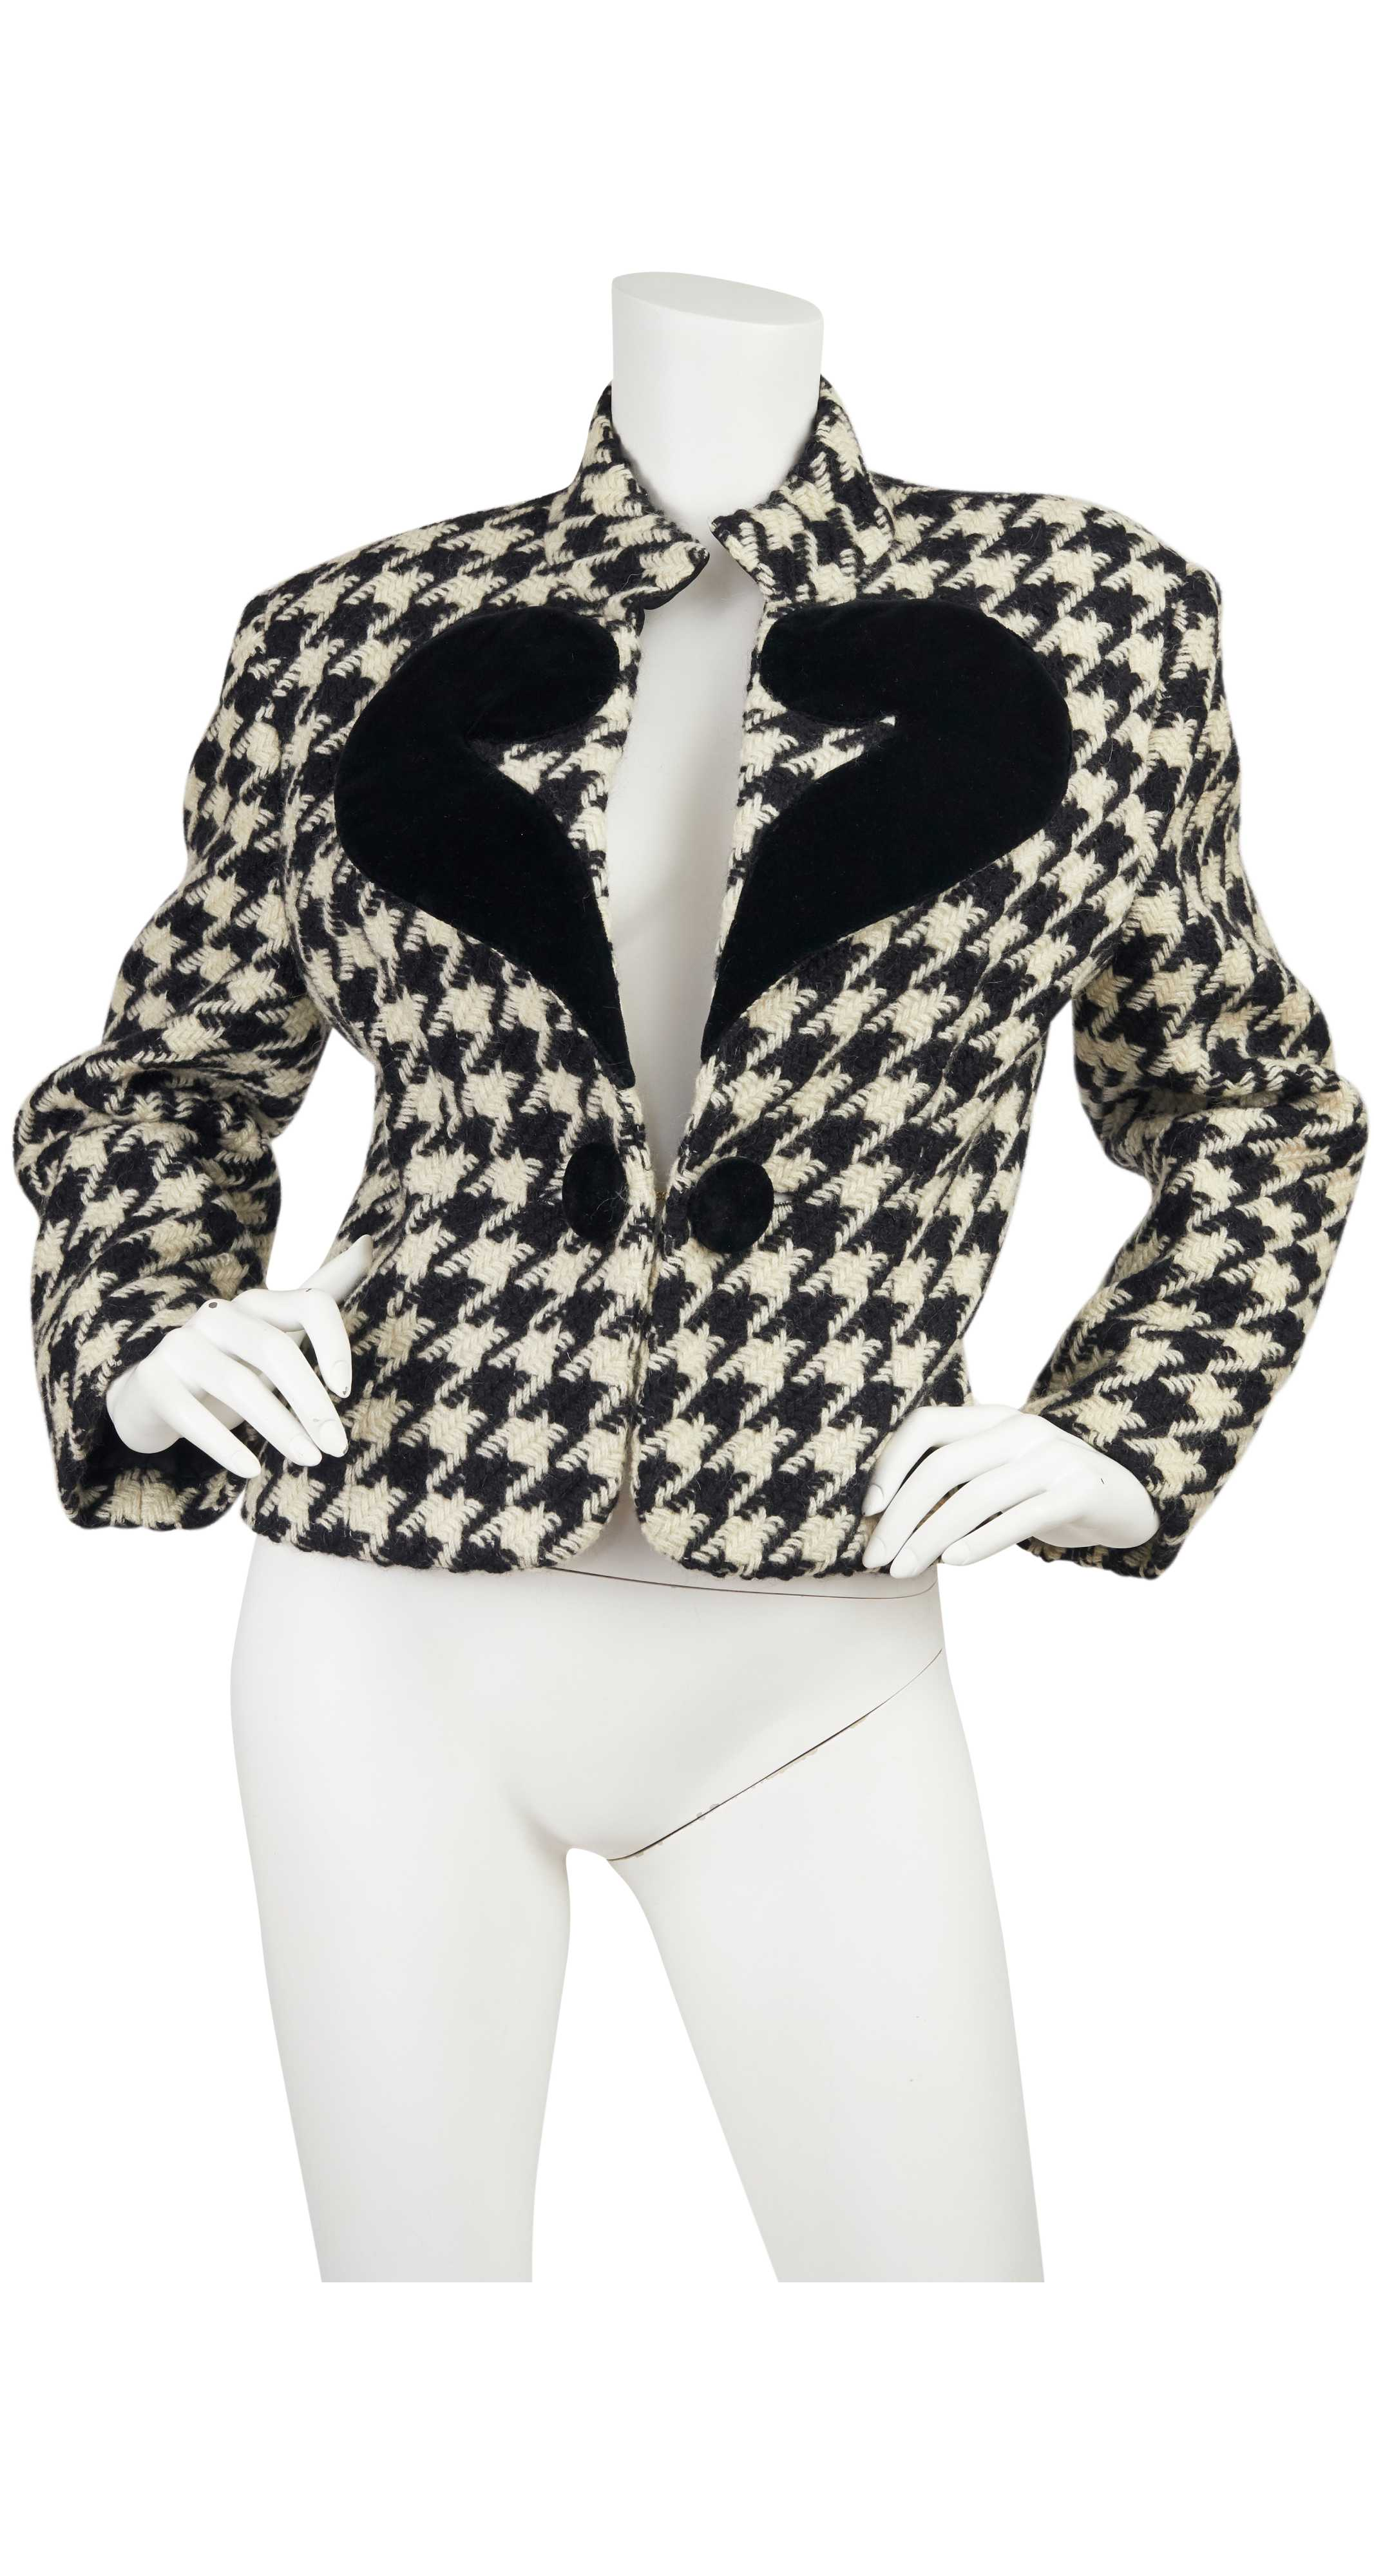 1980s Cheap and Chic Velvet Question Mark & Wool Houndstooth Jacket